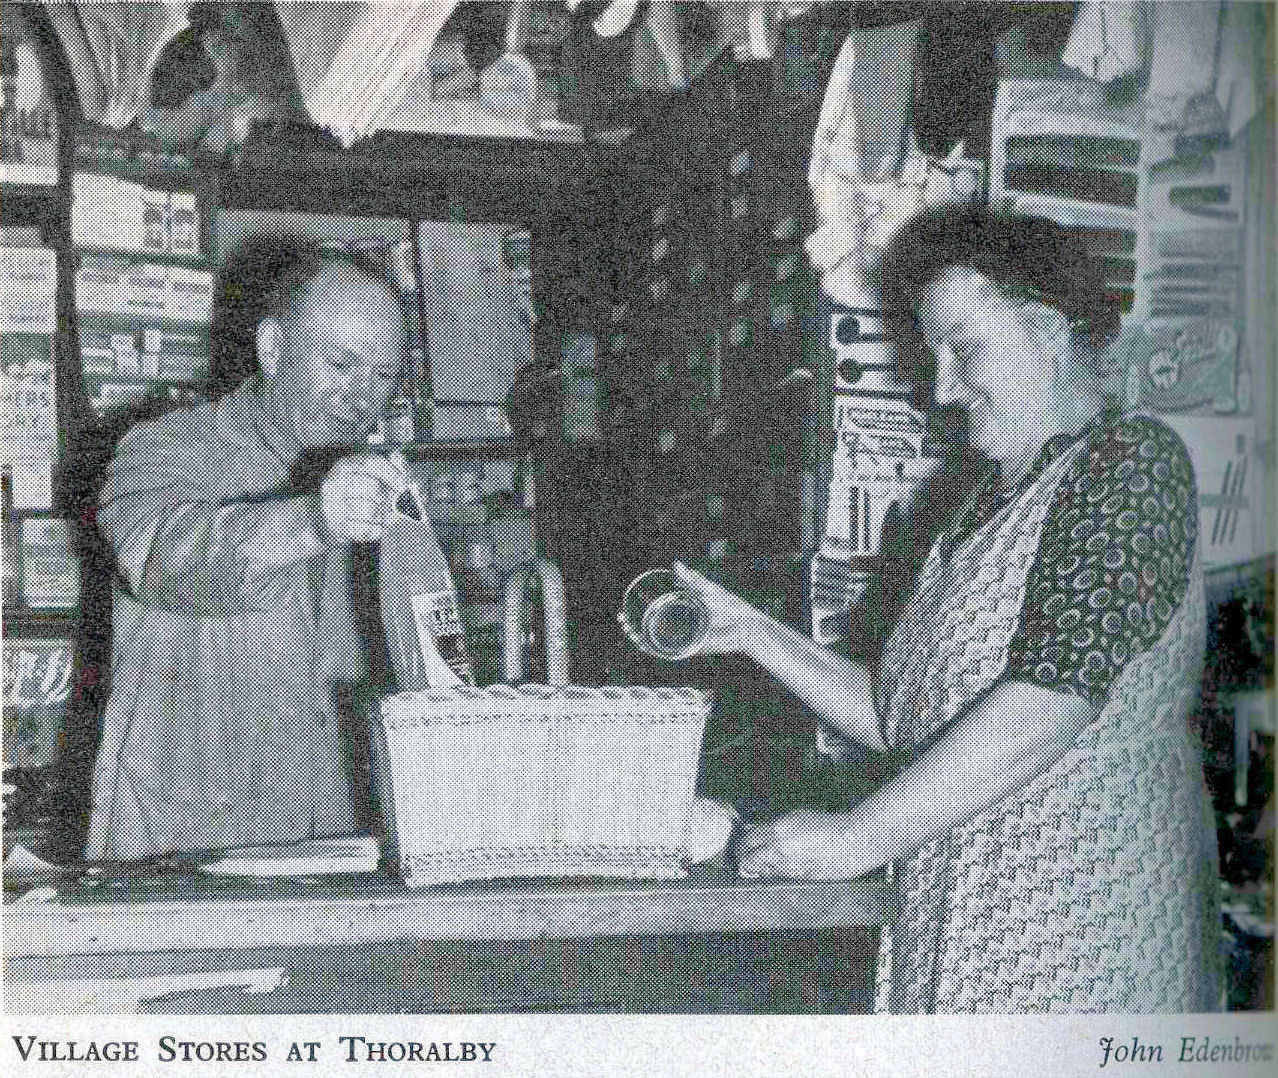 Thoralby Village Stores, 1953